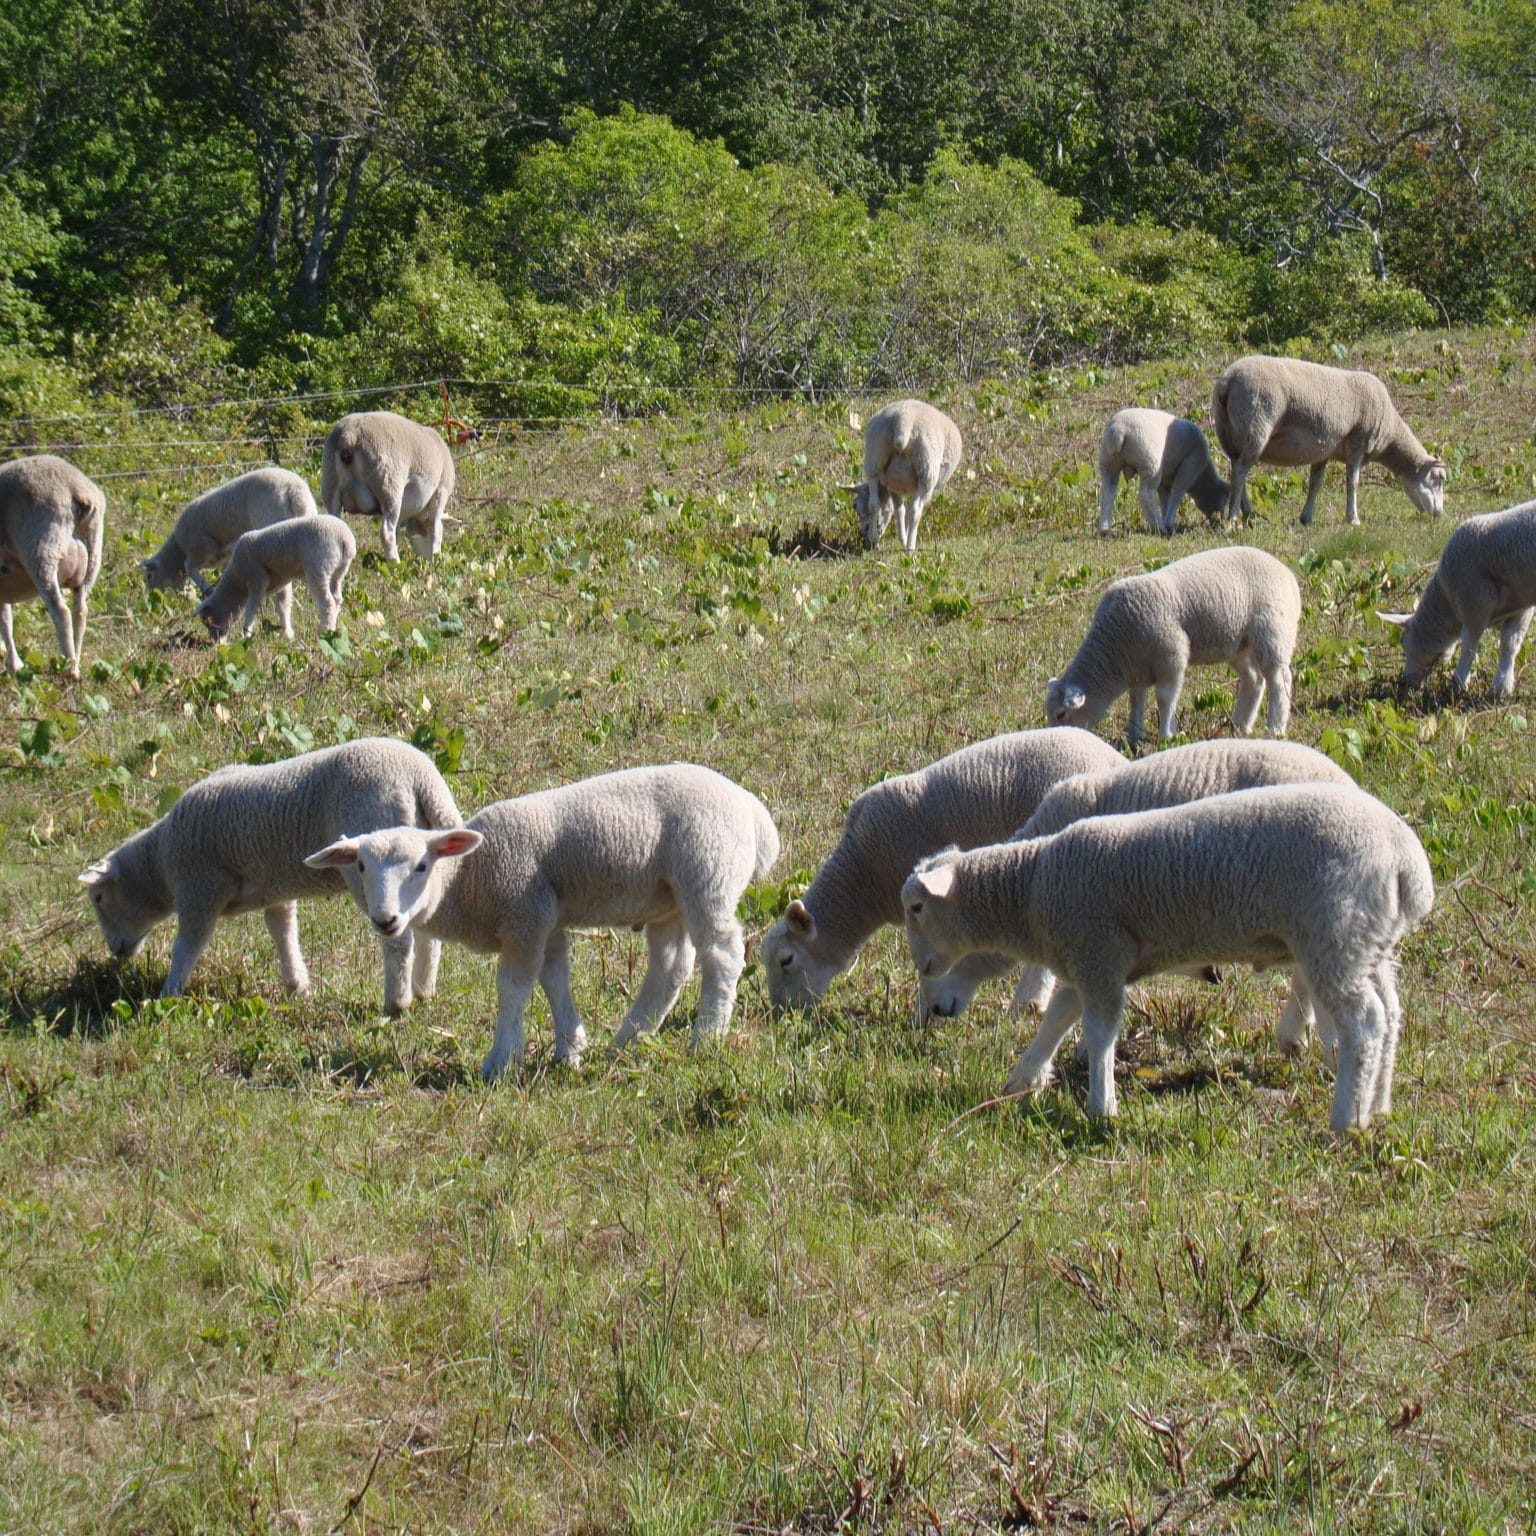 Sheep And Lambs June 2014 069